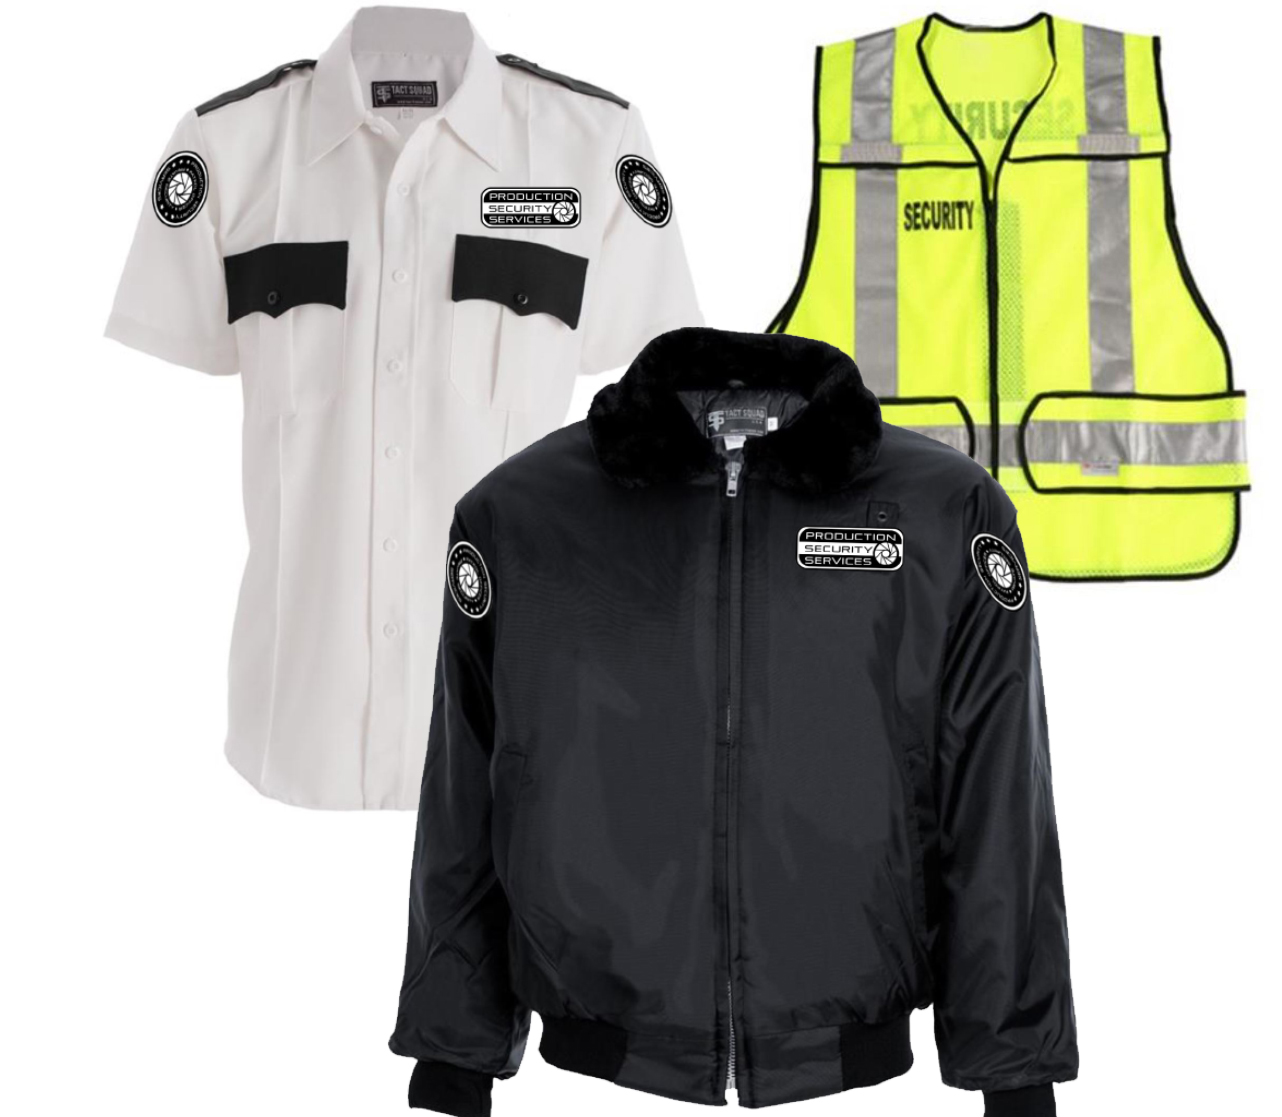 White Shirt-Black Jacket-Hi Vis Vest